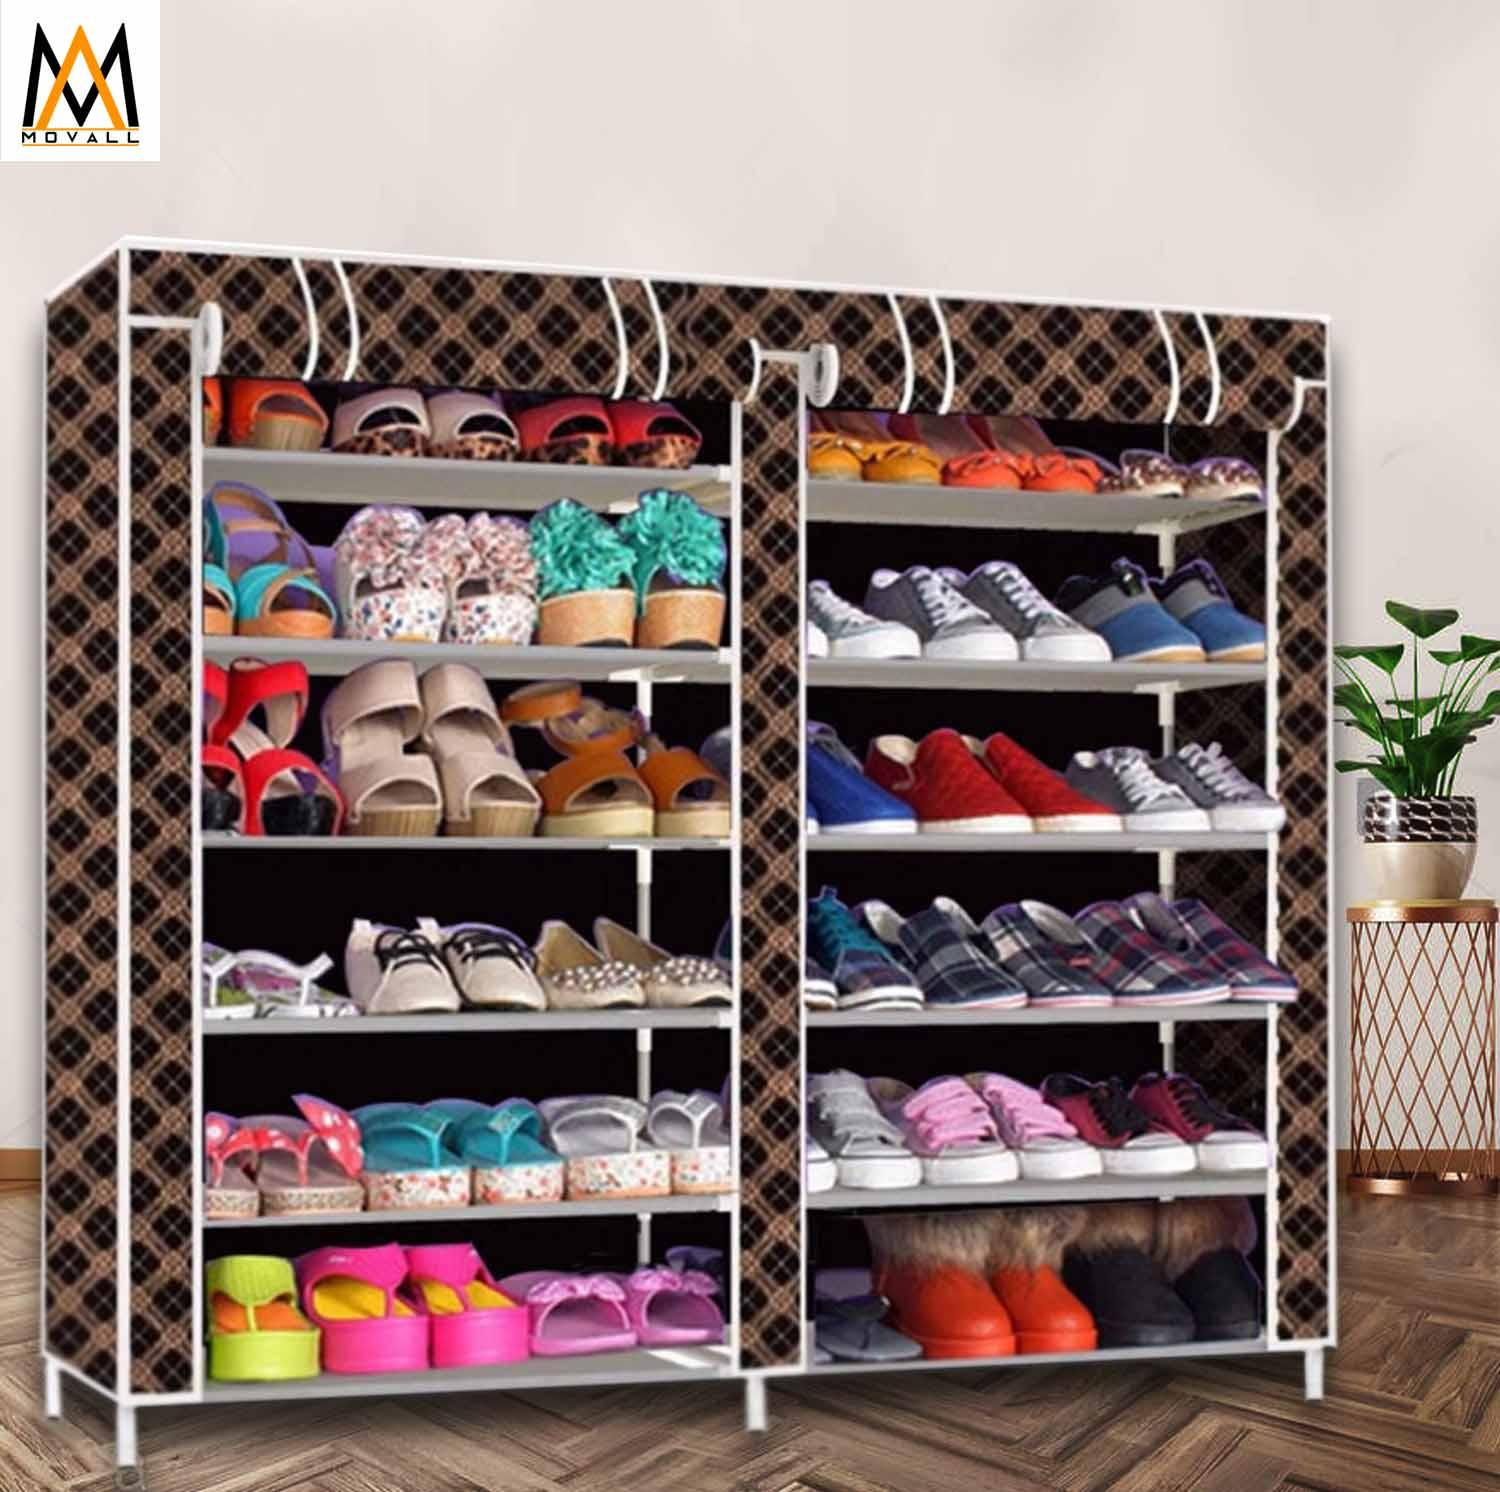 6-Tier Double Cabinet Shoe Rack Storage Cabinet Organizer K66 By Movall.